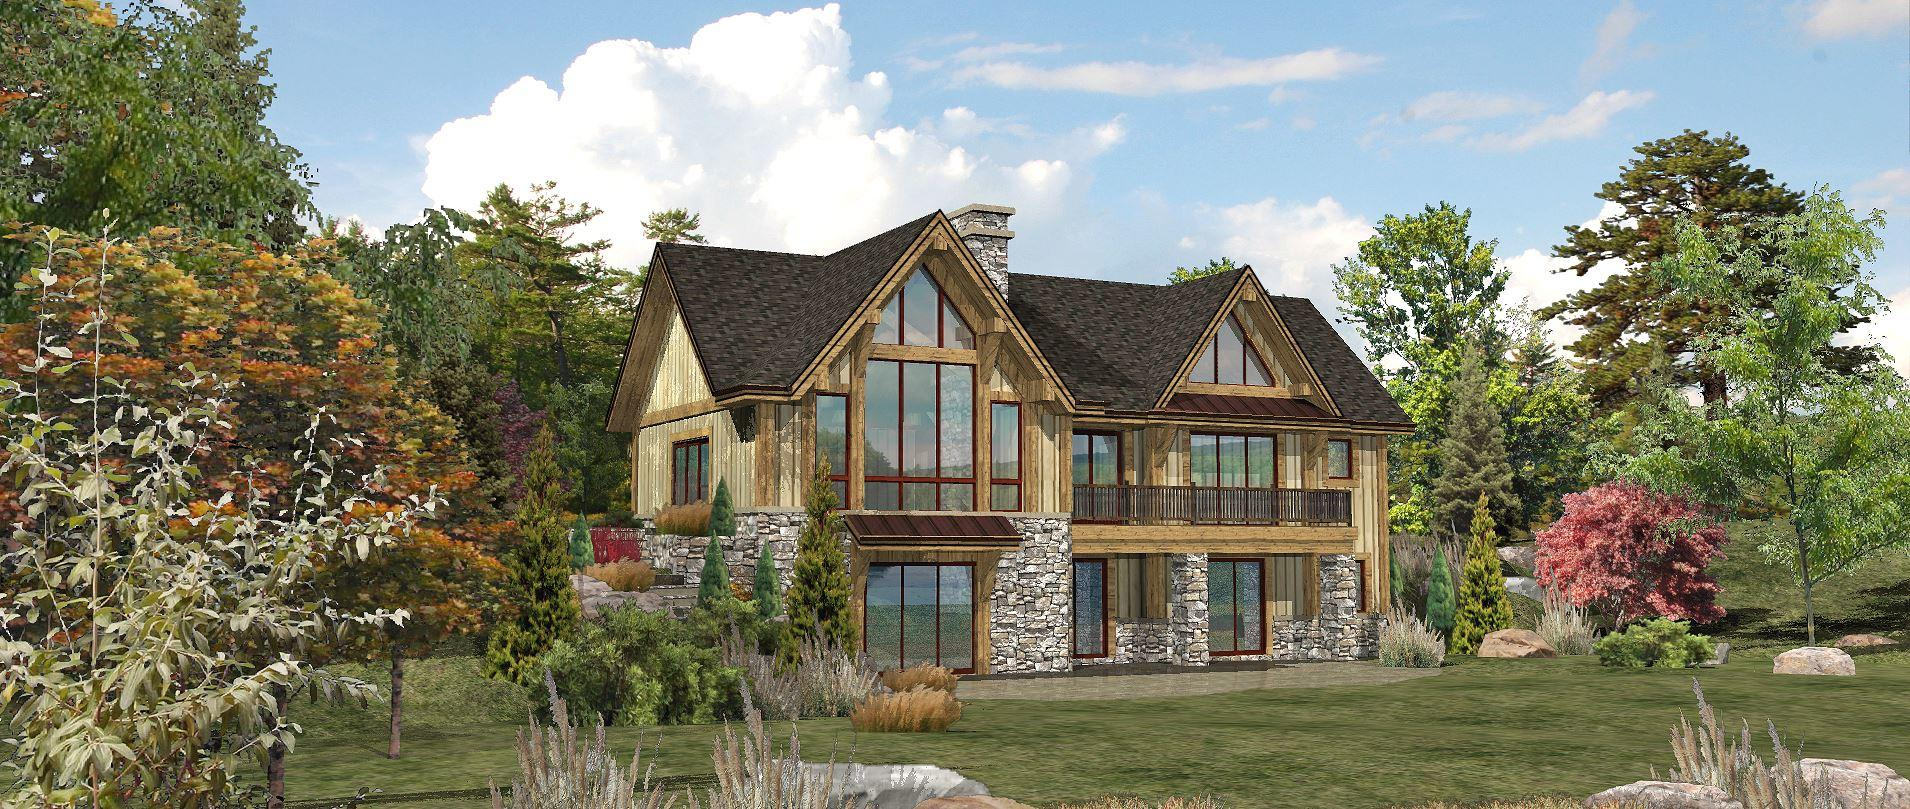 Lakefront - Rear Rendering by Wisconsin Log Homes 1